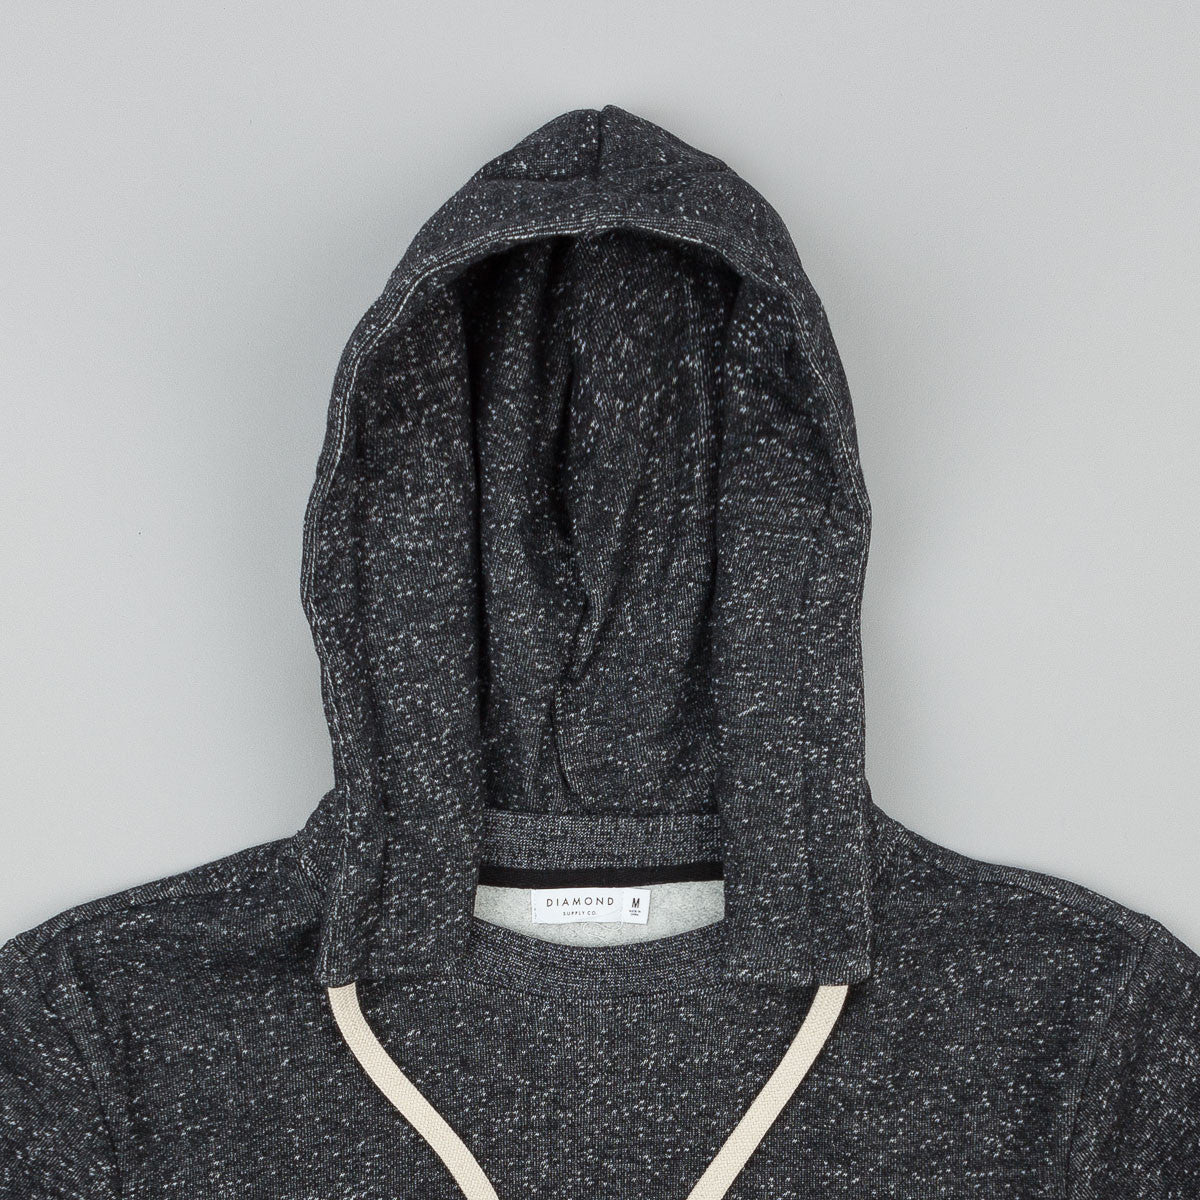 Diamond Stone Cut Hooded Sweatshirt - Pepper